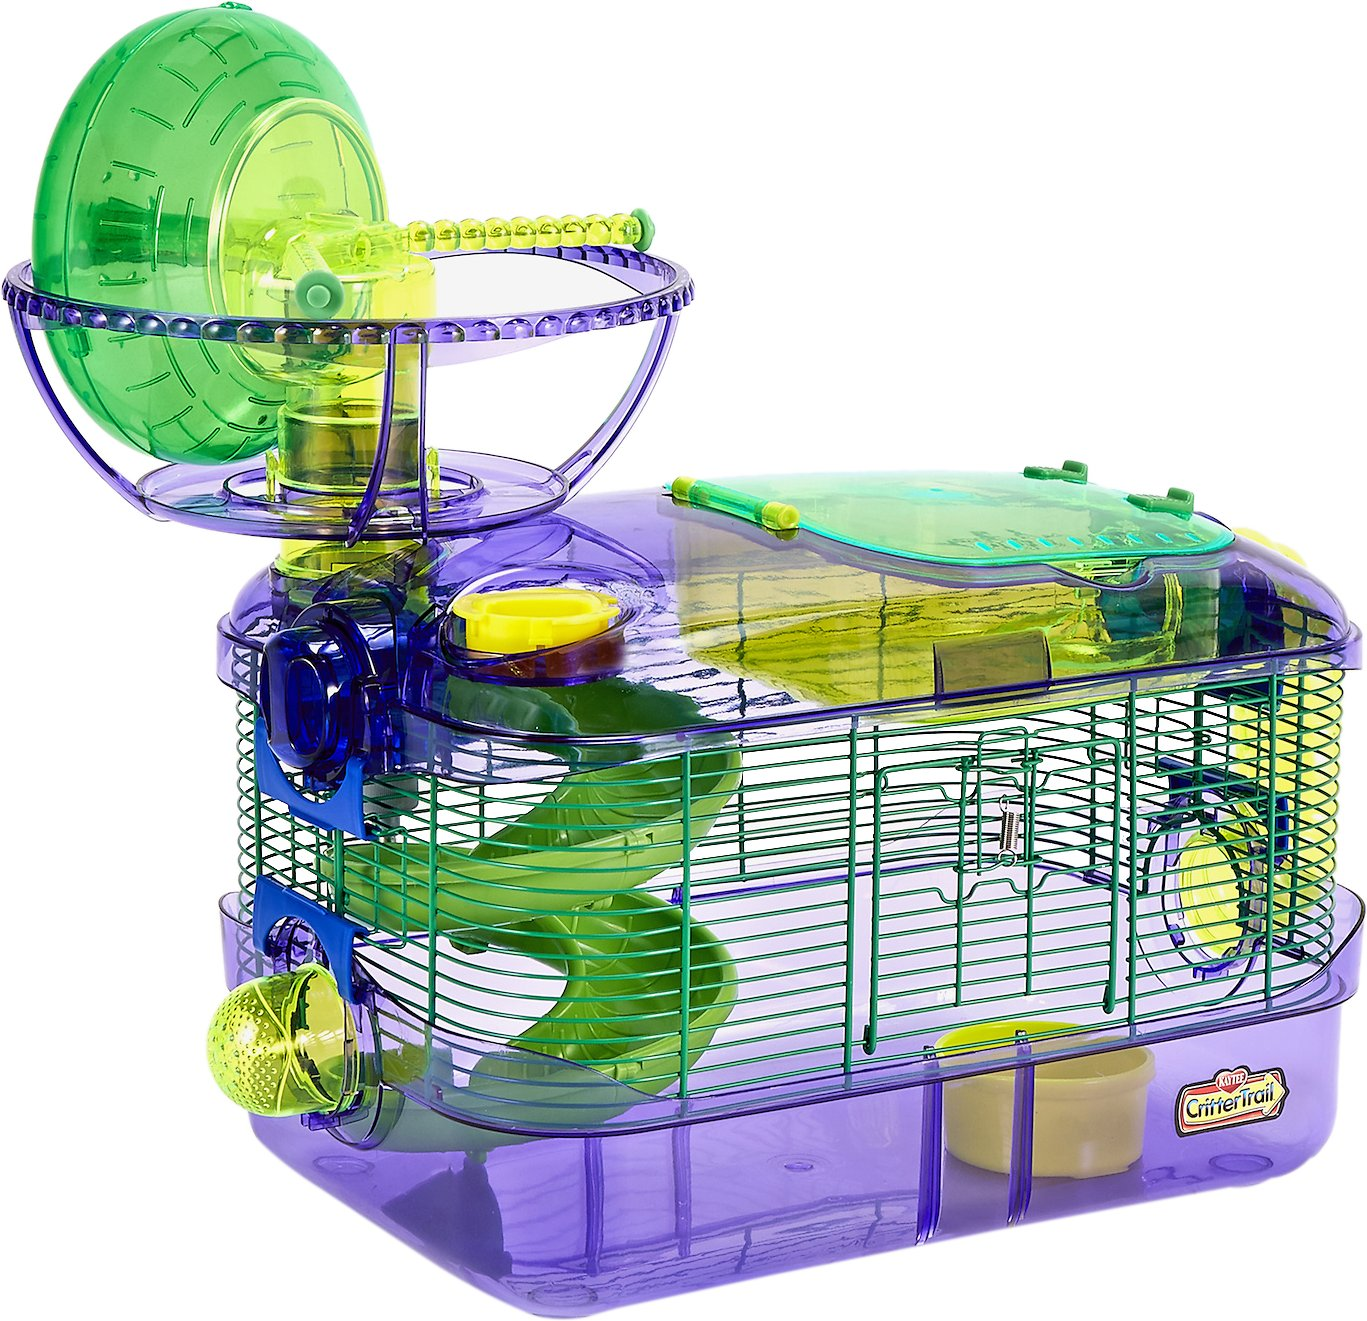 Kaytee CritterTrail Extreme Challenge Small Animal Habitat, 20-in